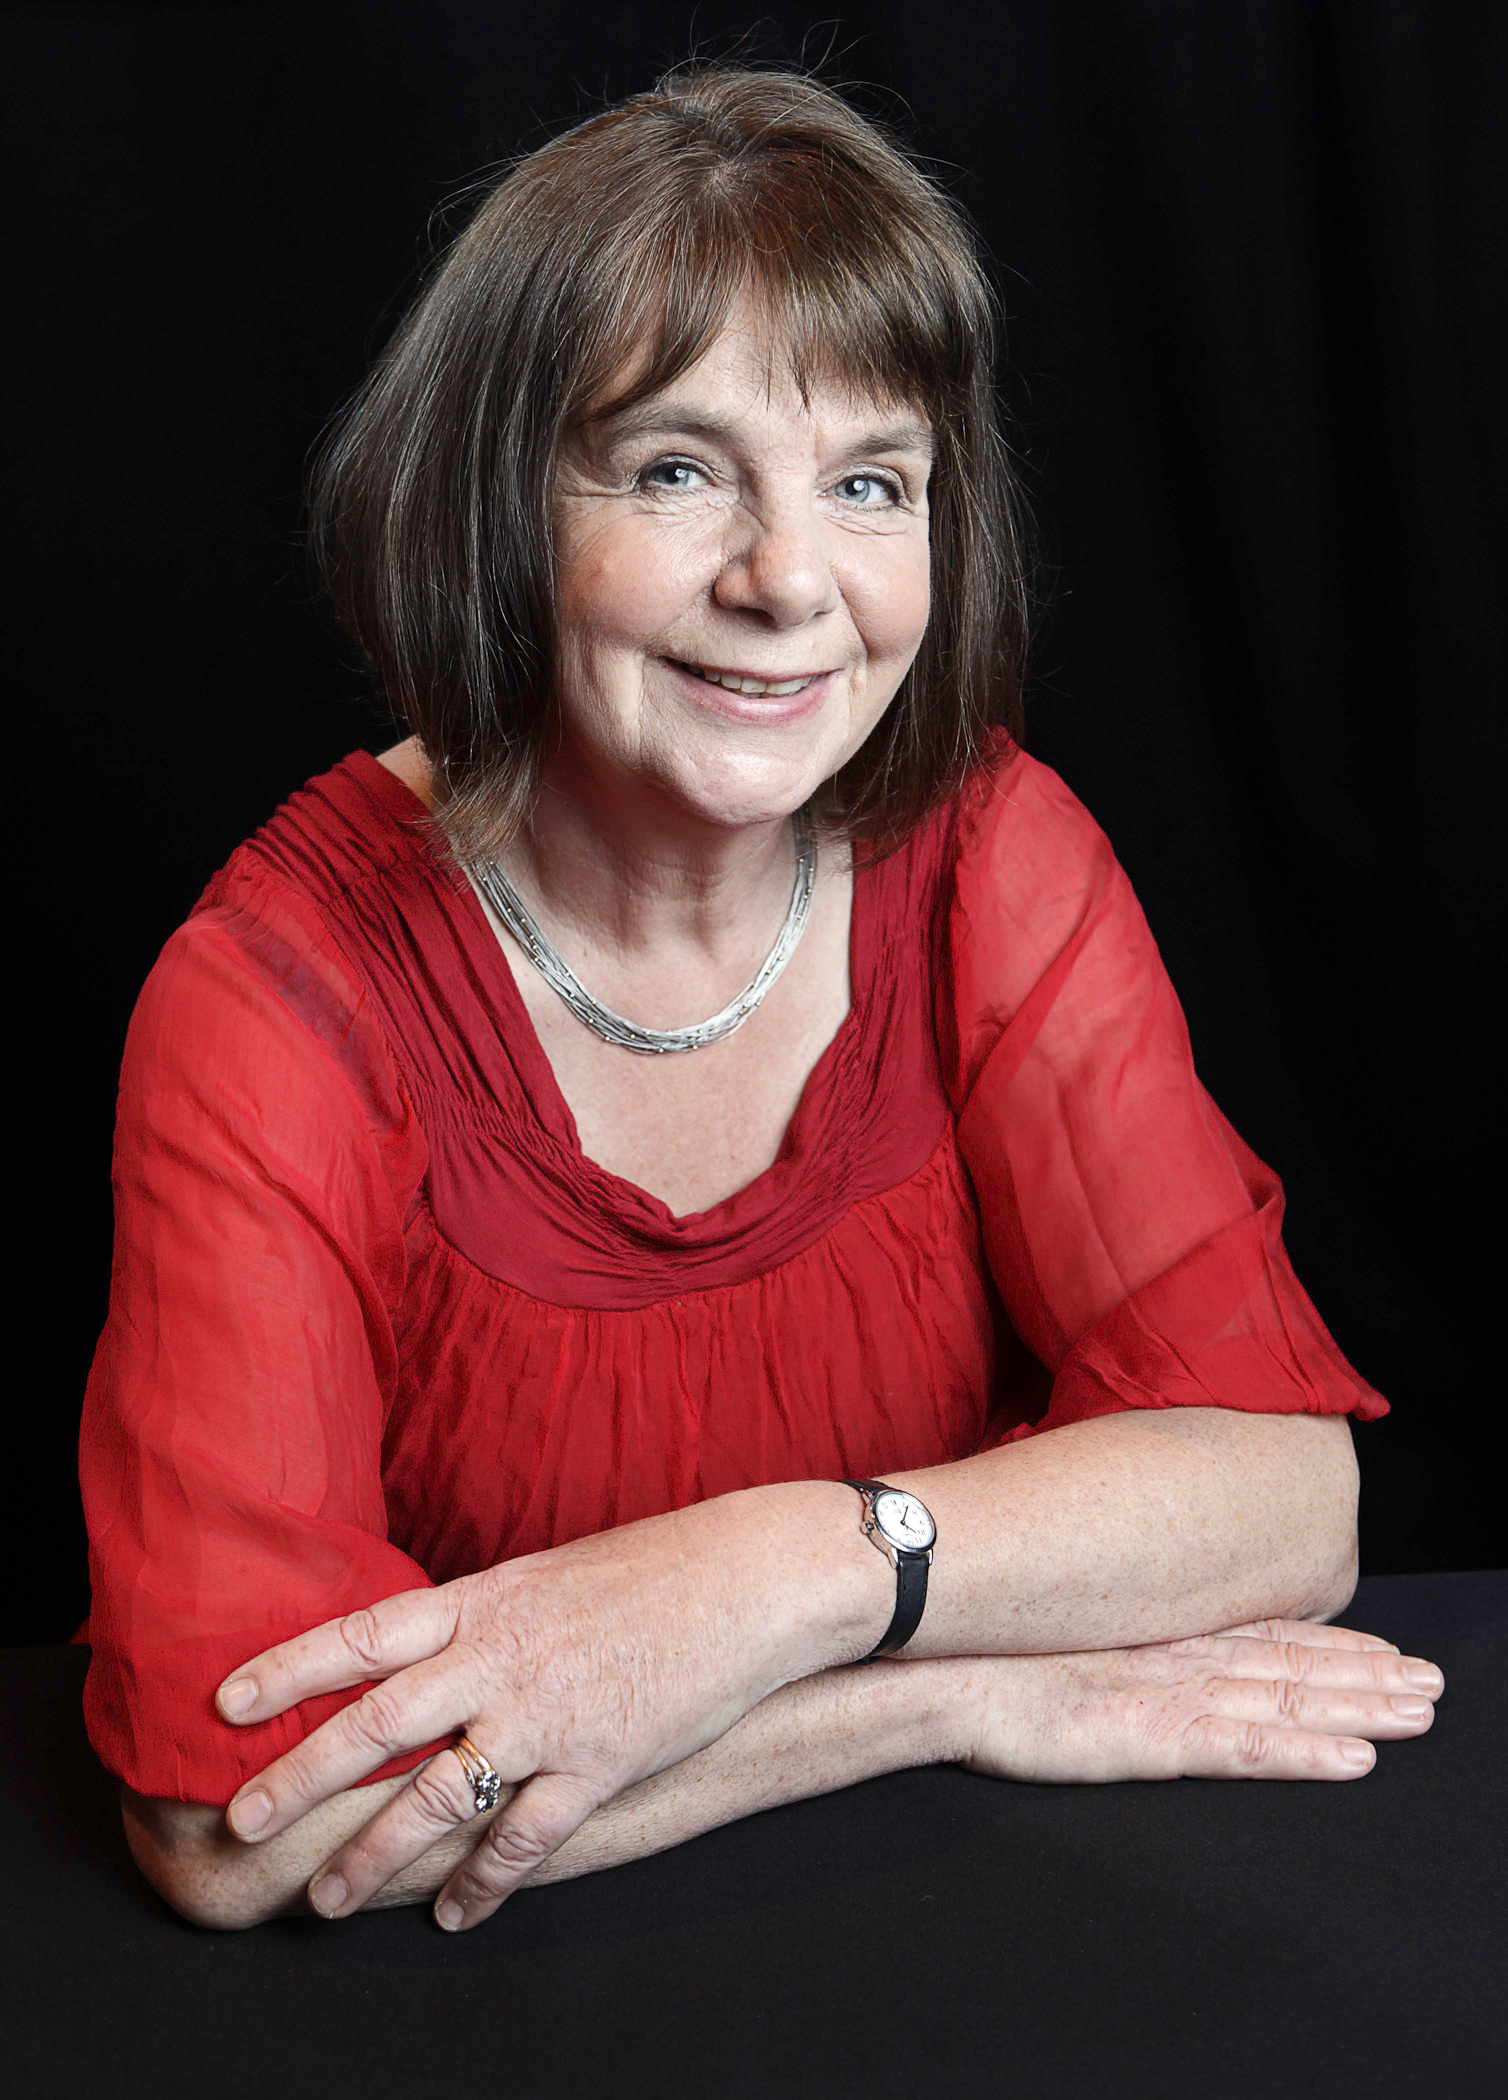 INTERVIEW: Author Julia Donaldson